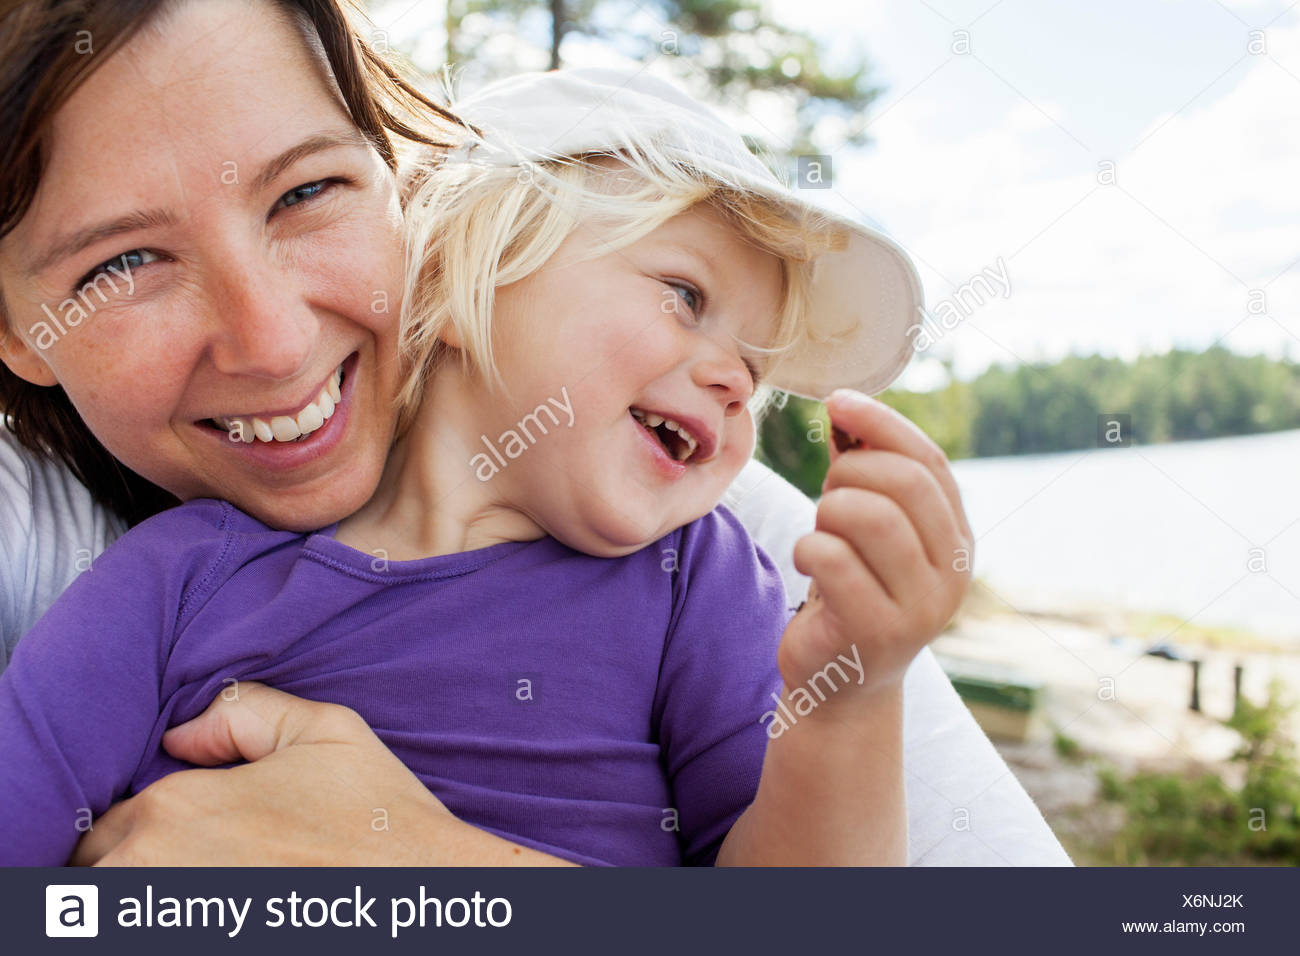 Sweden, Vastergotland, Vattlefjall nature reserve, Mother holding daughter (2-3) - Stock Image